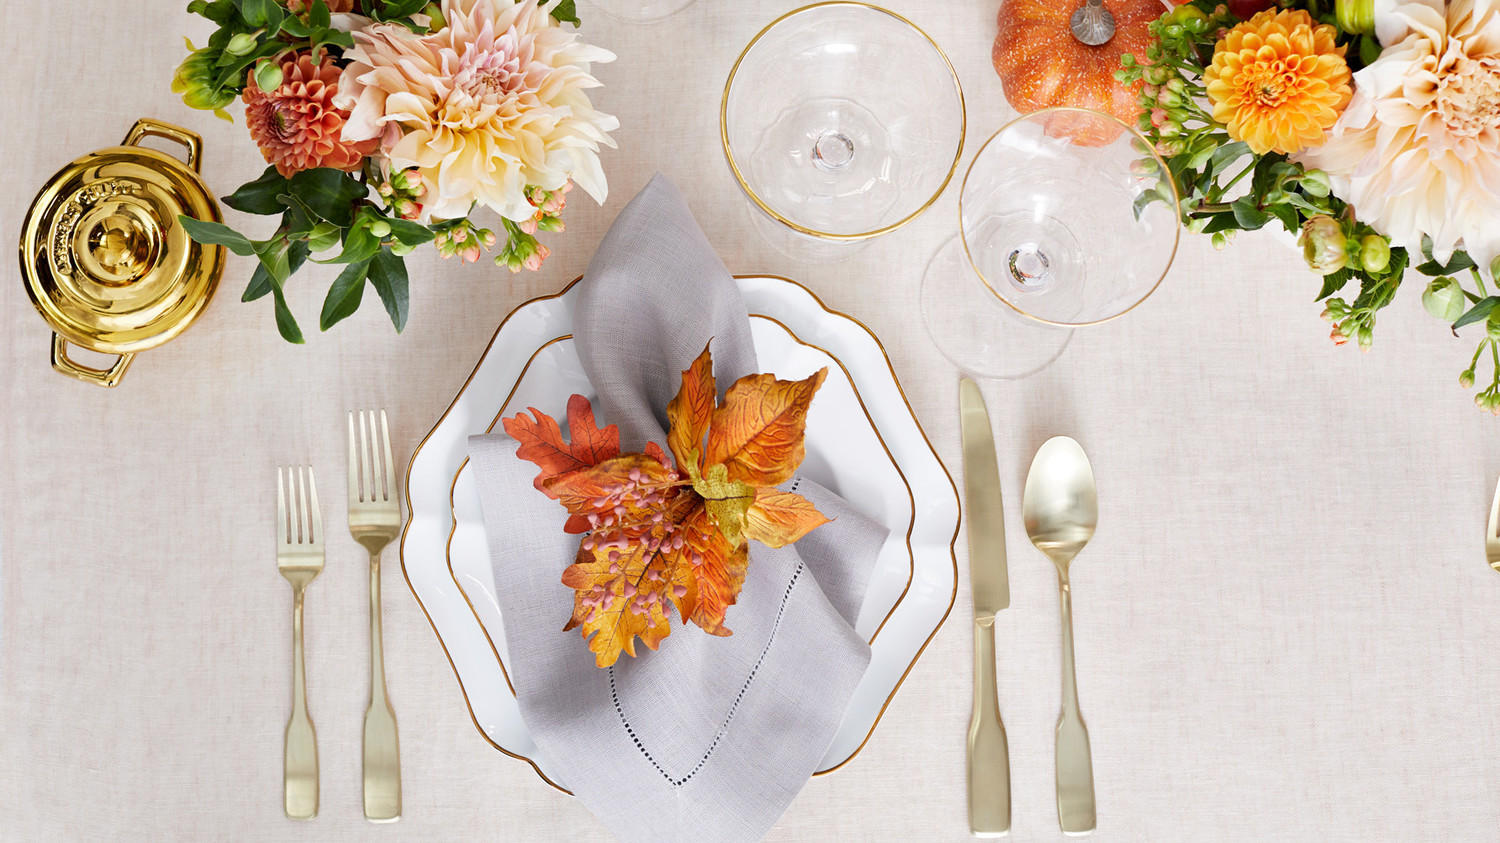 martha stewart collection harvest dinnerware and serveware place setting